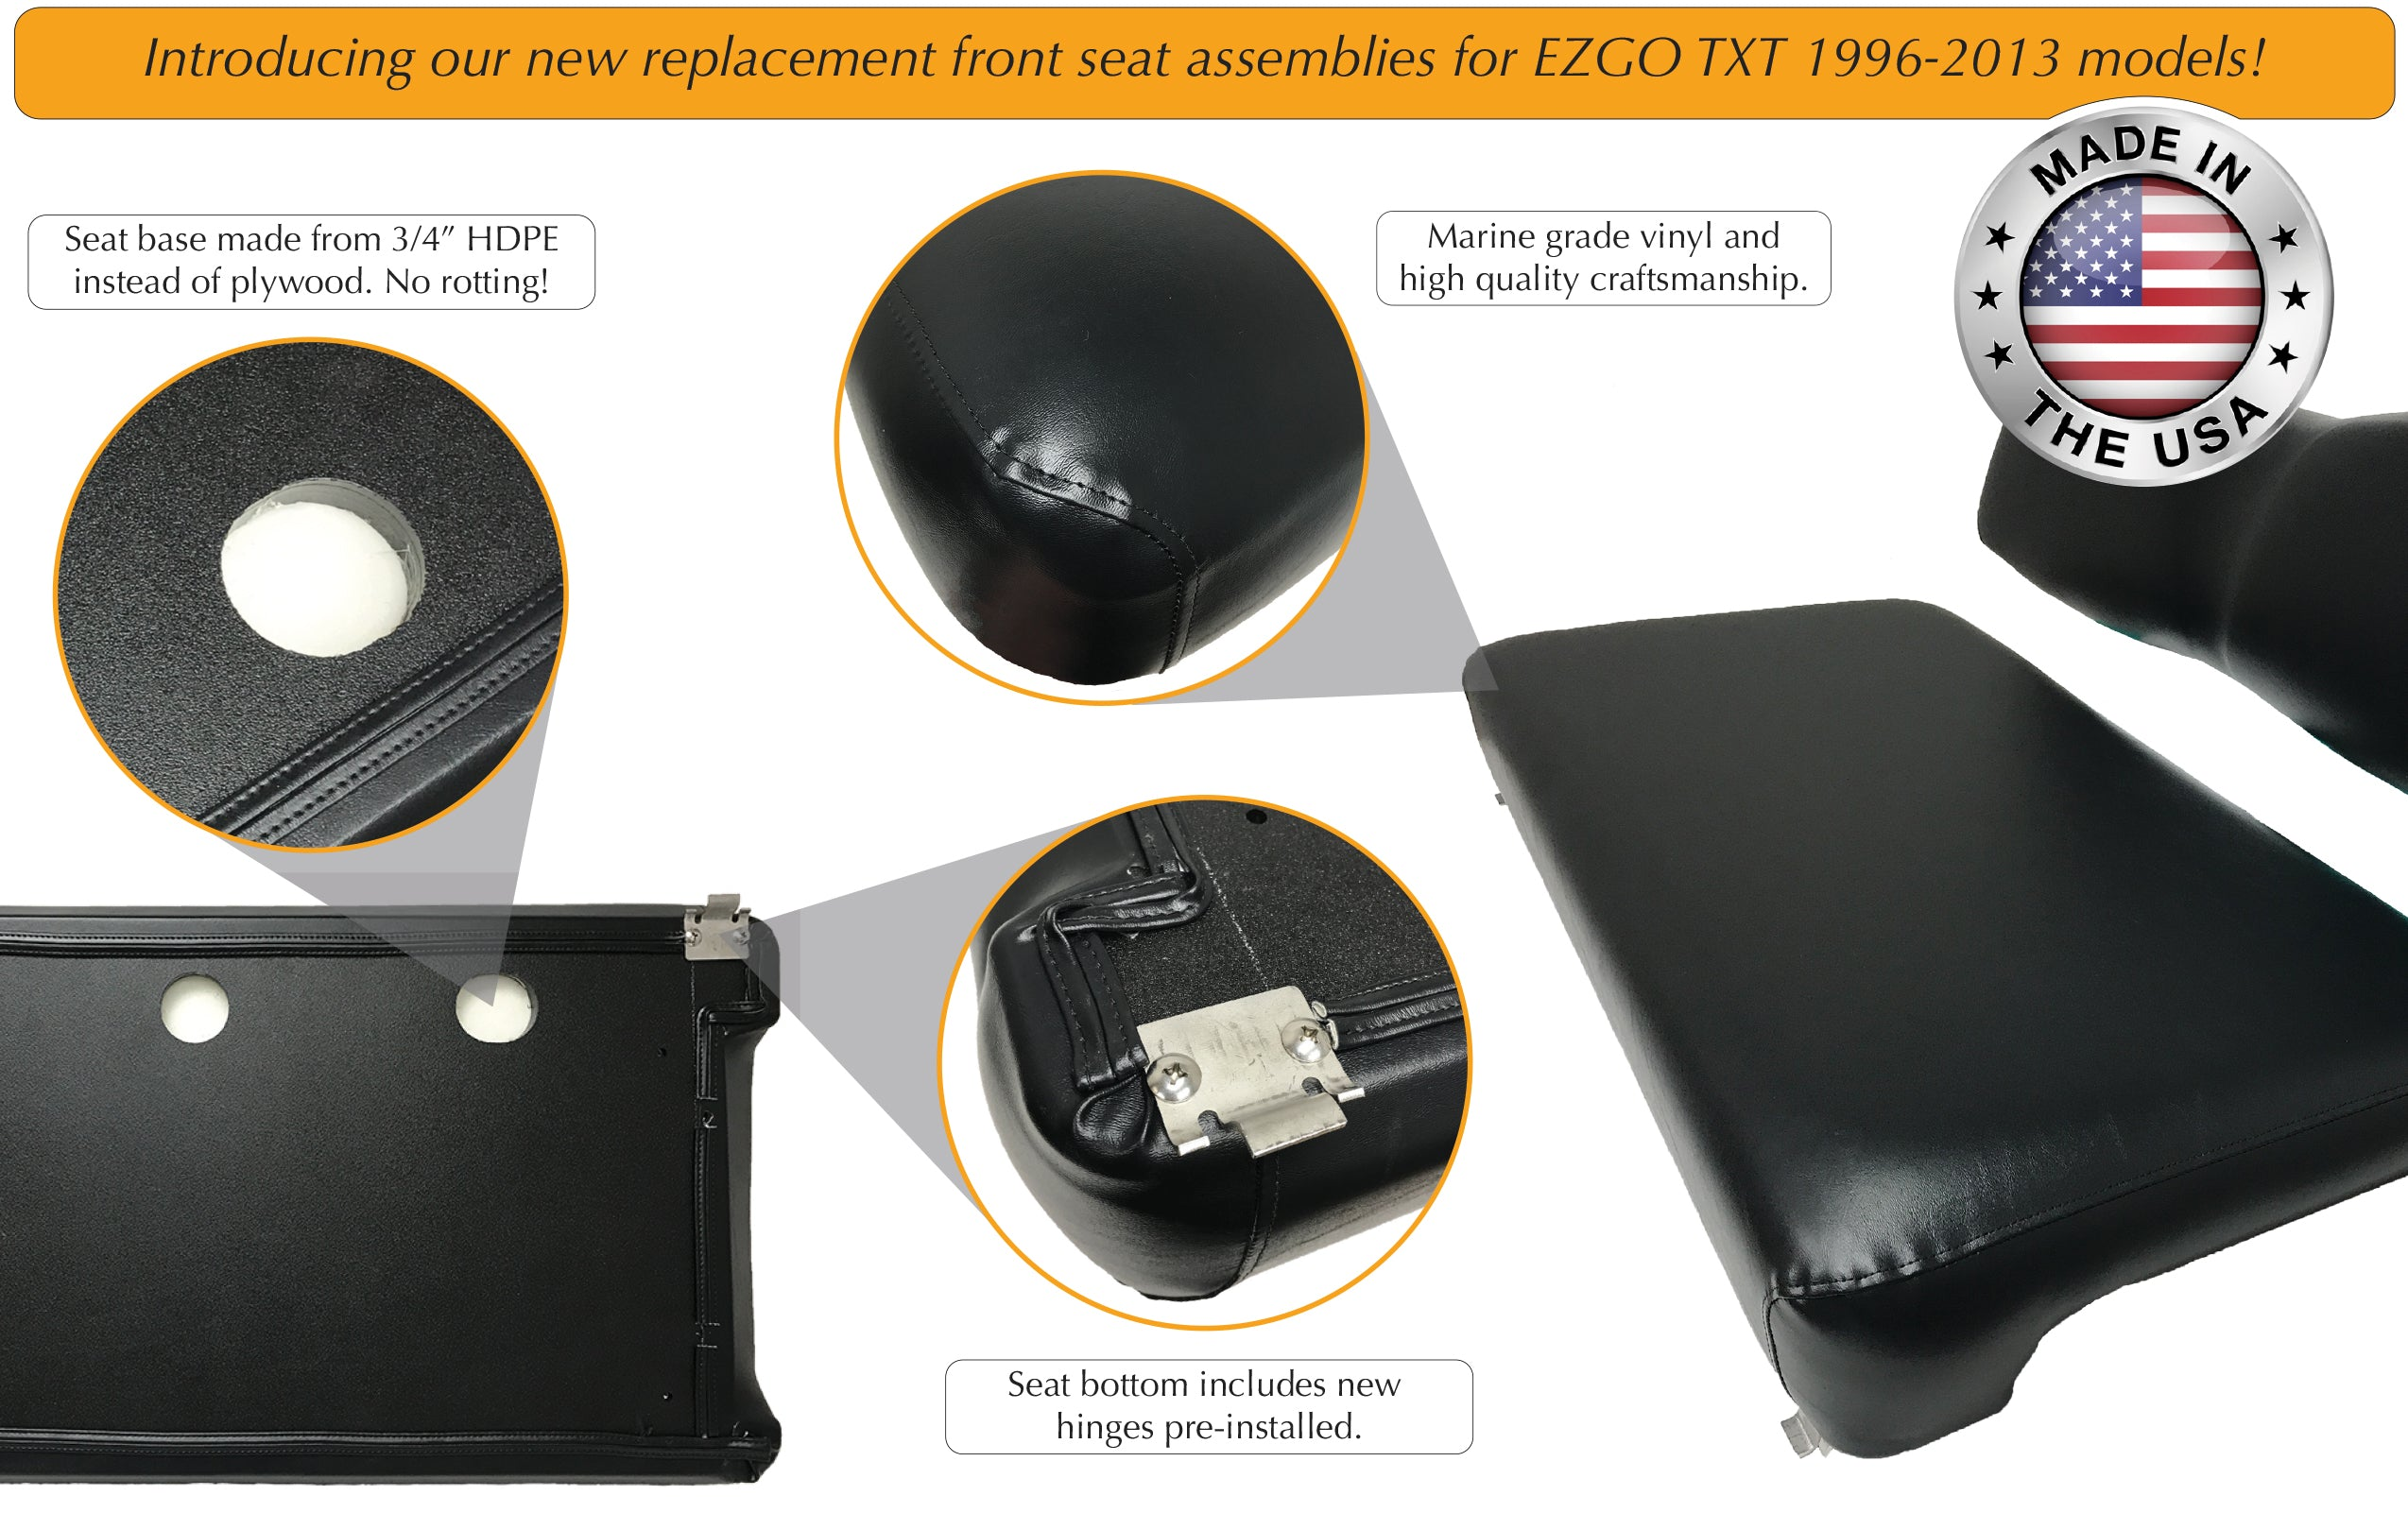 Features of EZGO TXT golf cart replacement front seat assembly with no wood, no rot base.